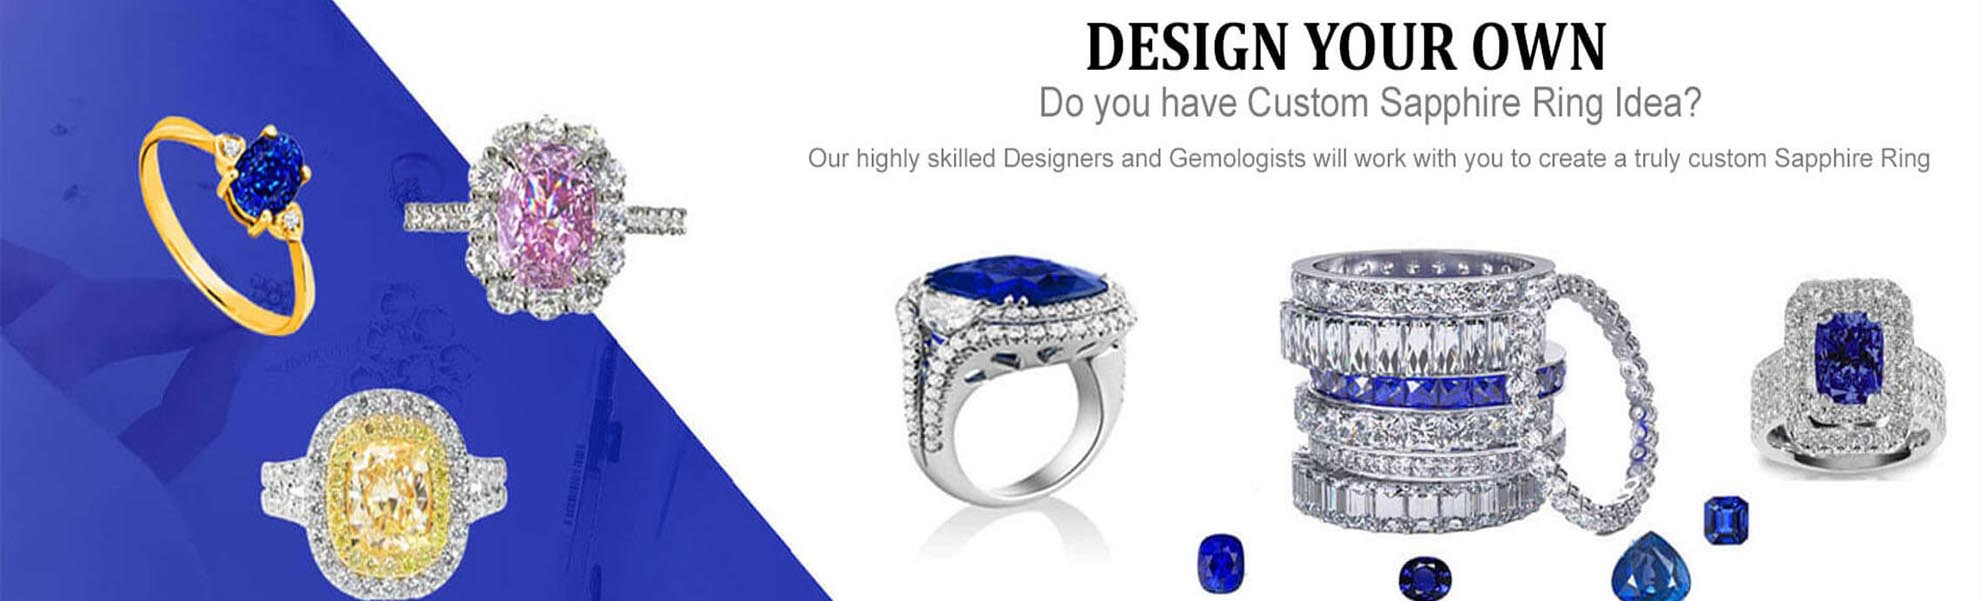 Design your Own Sapphire Rings Design